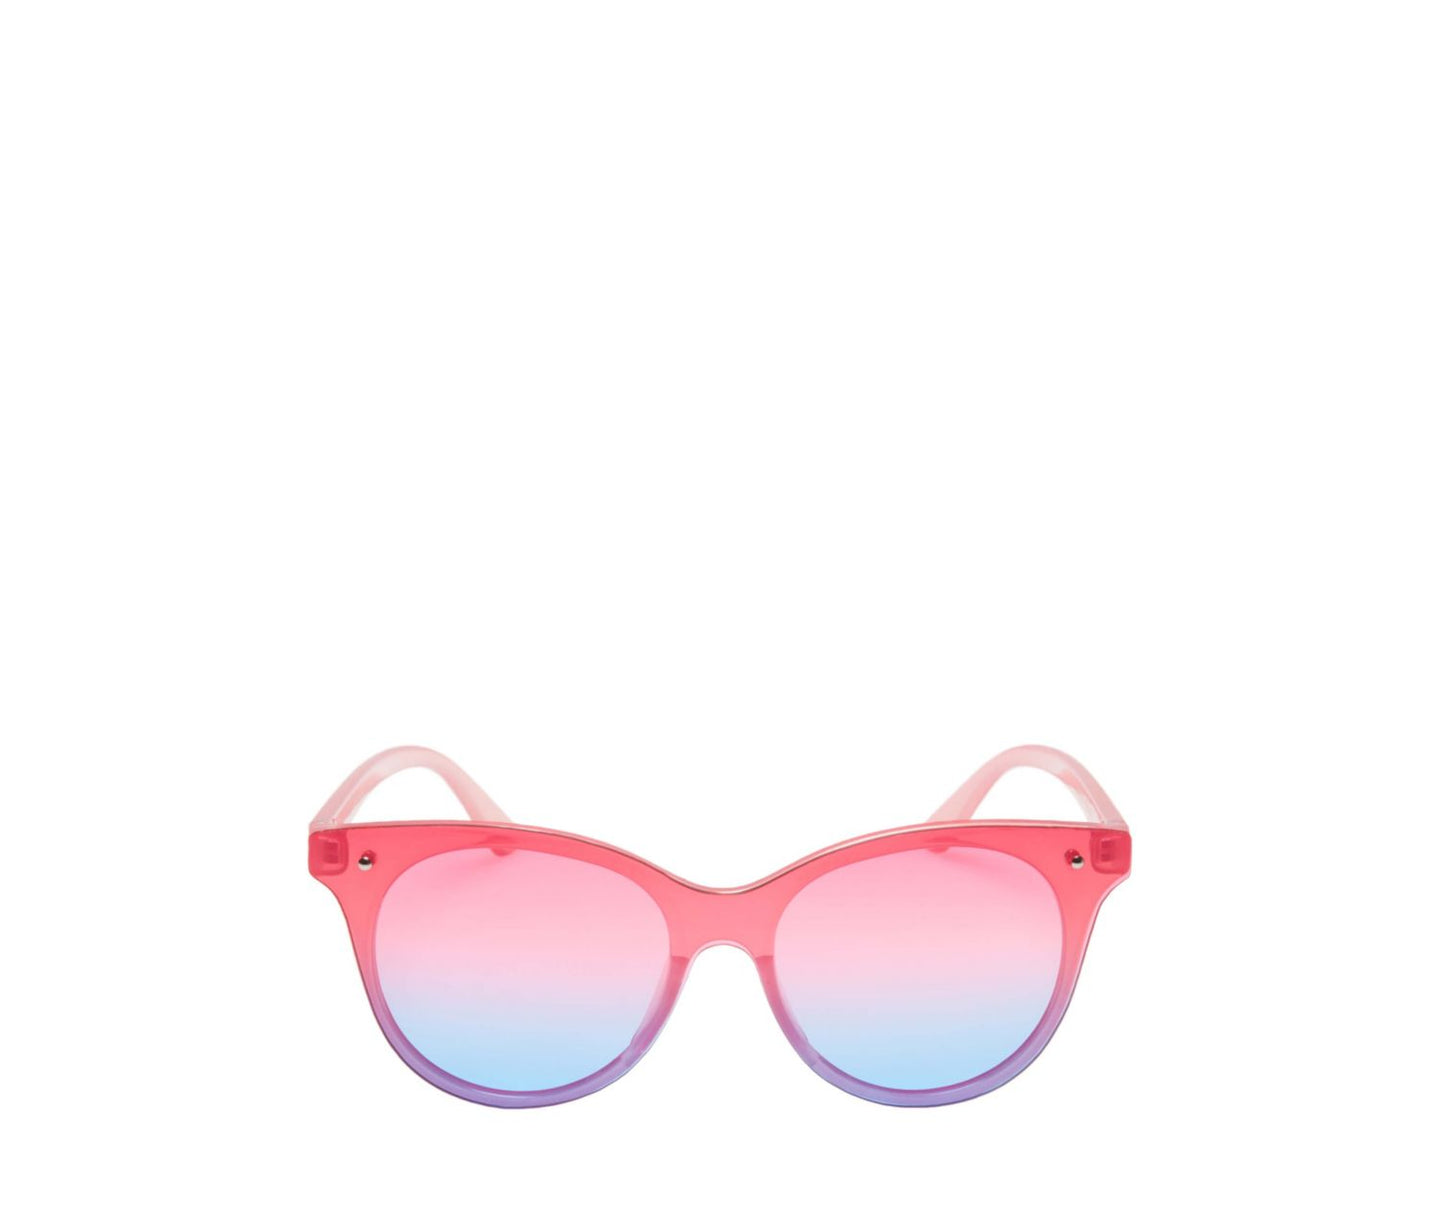 OFF THE GRID SUNGLASSES PINK MULTI - ACCESSORIES - Betsey Johnson